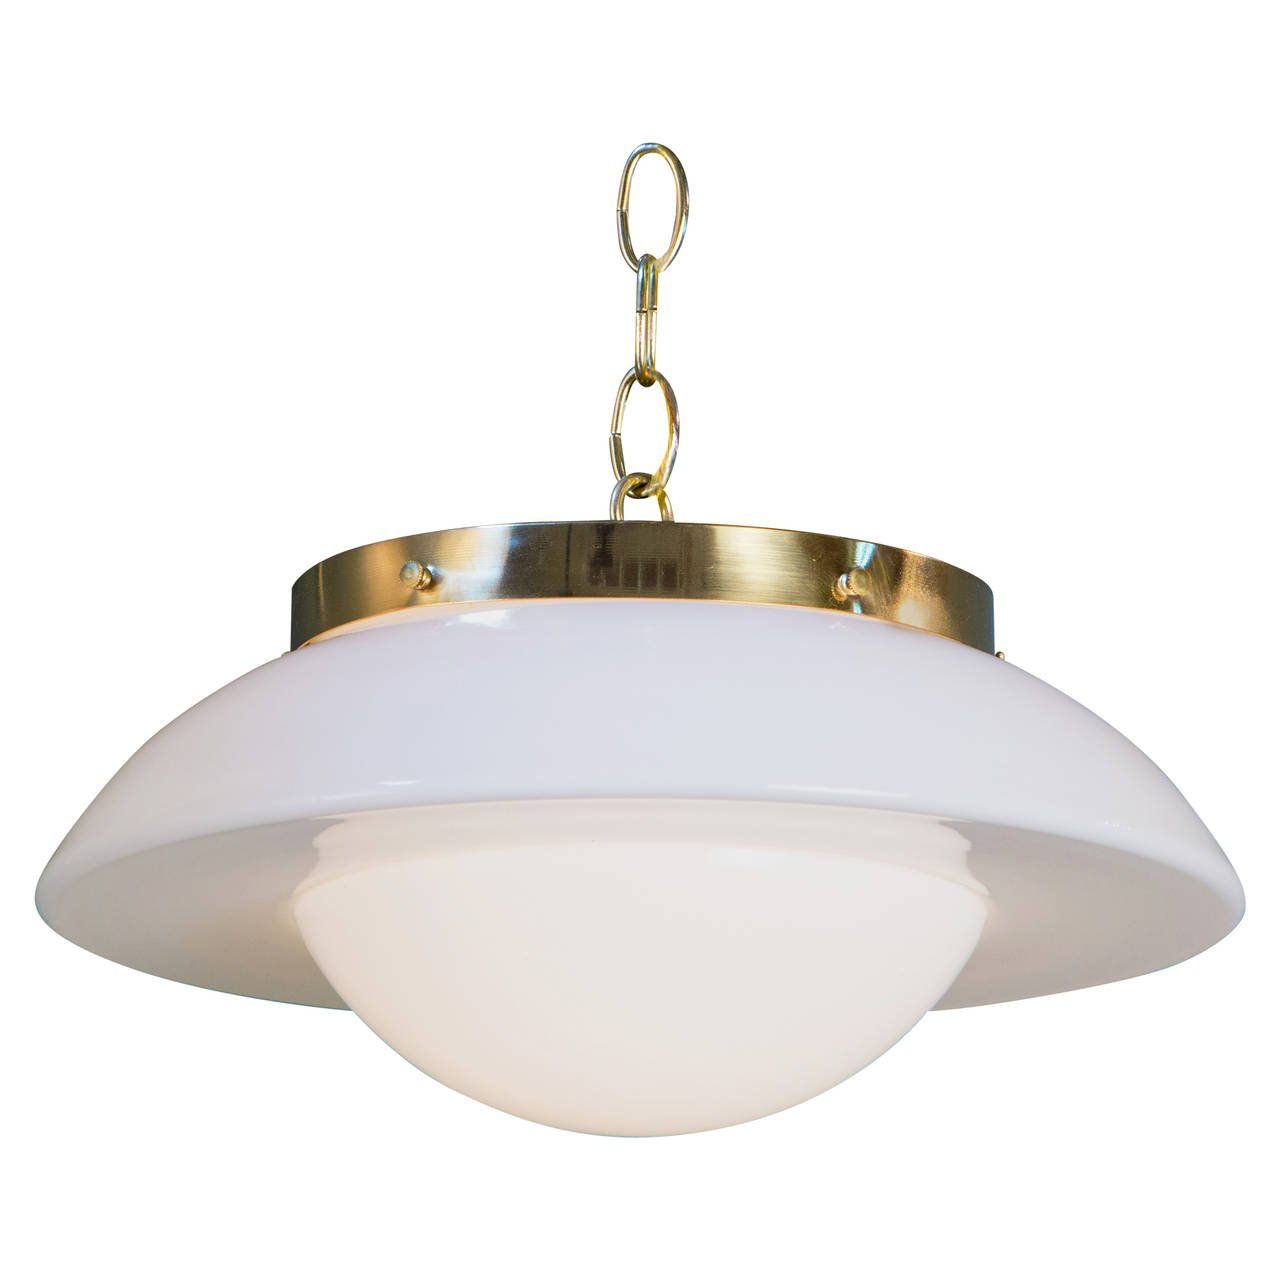 For On Interesting Vintage Milk Glass Shade As Pendant With Brass Hardware From Germany Circa Newly Rewired In The Us All Ul Approved Parts